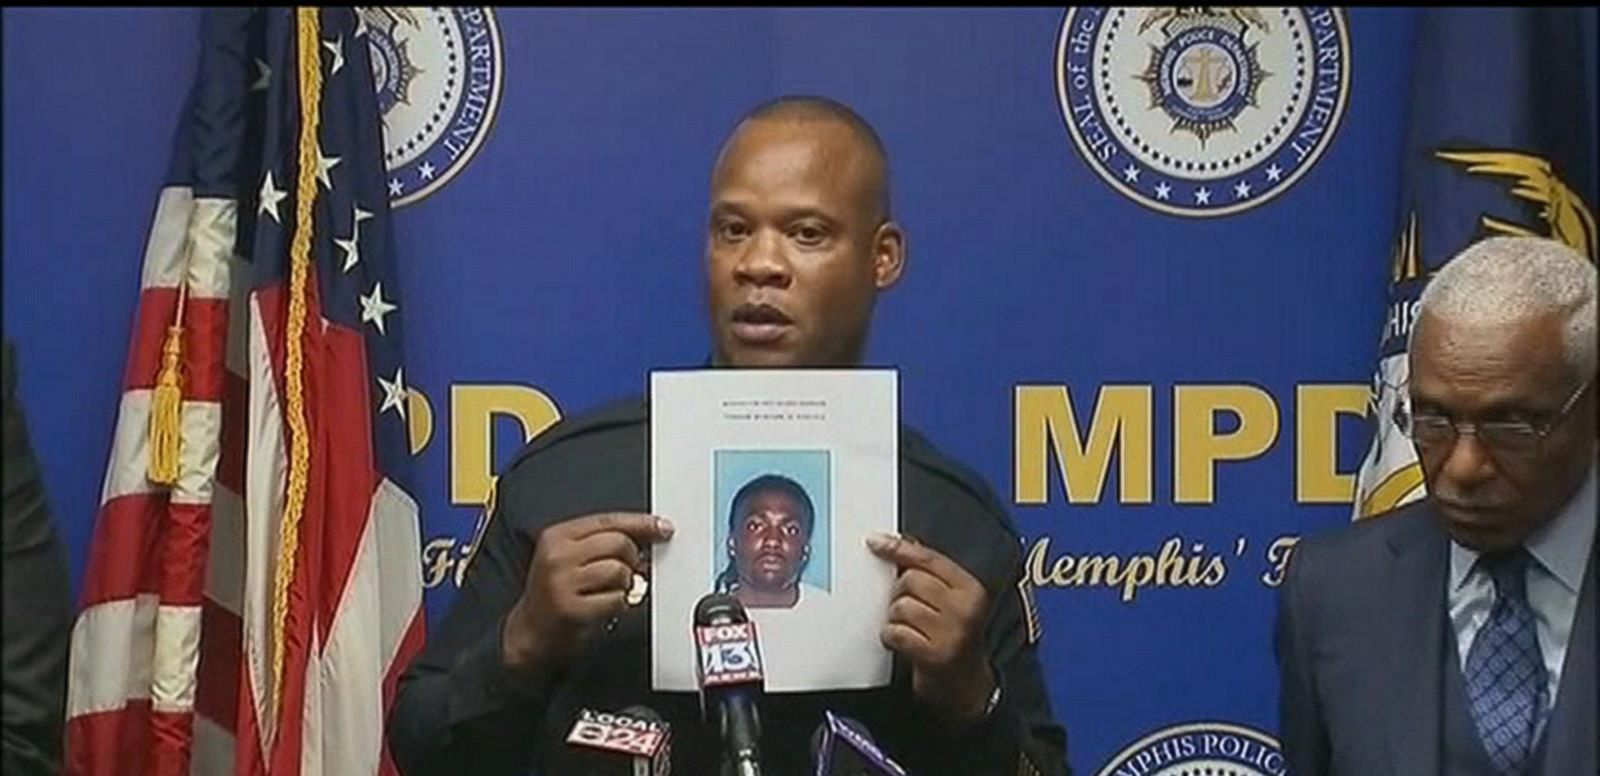 VIDEO: Police say 29 year old convicted bank robber Tremaine Wilbourn killed Officer Sean Bolton during routine traffic stop.